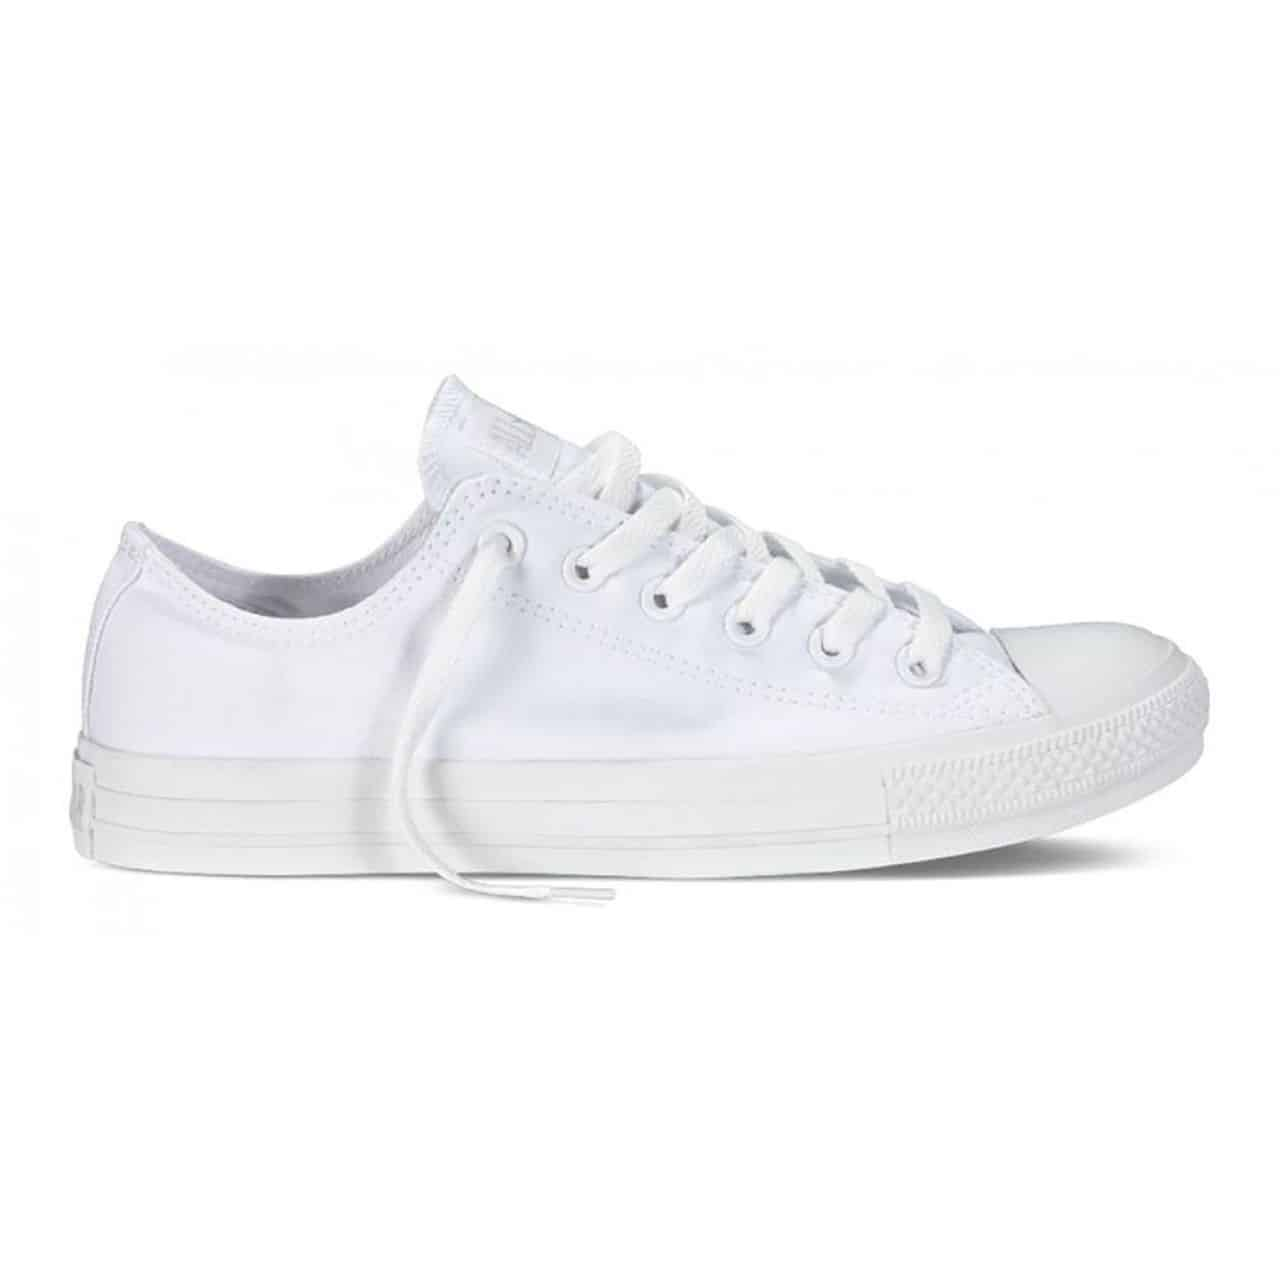 TENISI ORIGINALI CONVERSE CT ALL STAR SP OX - 1U647